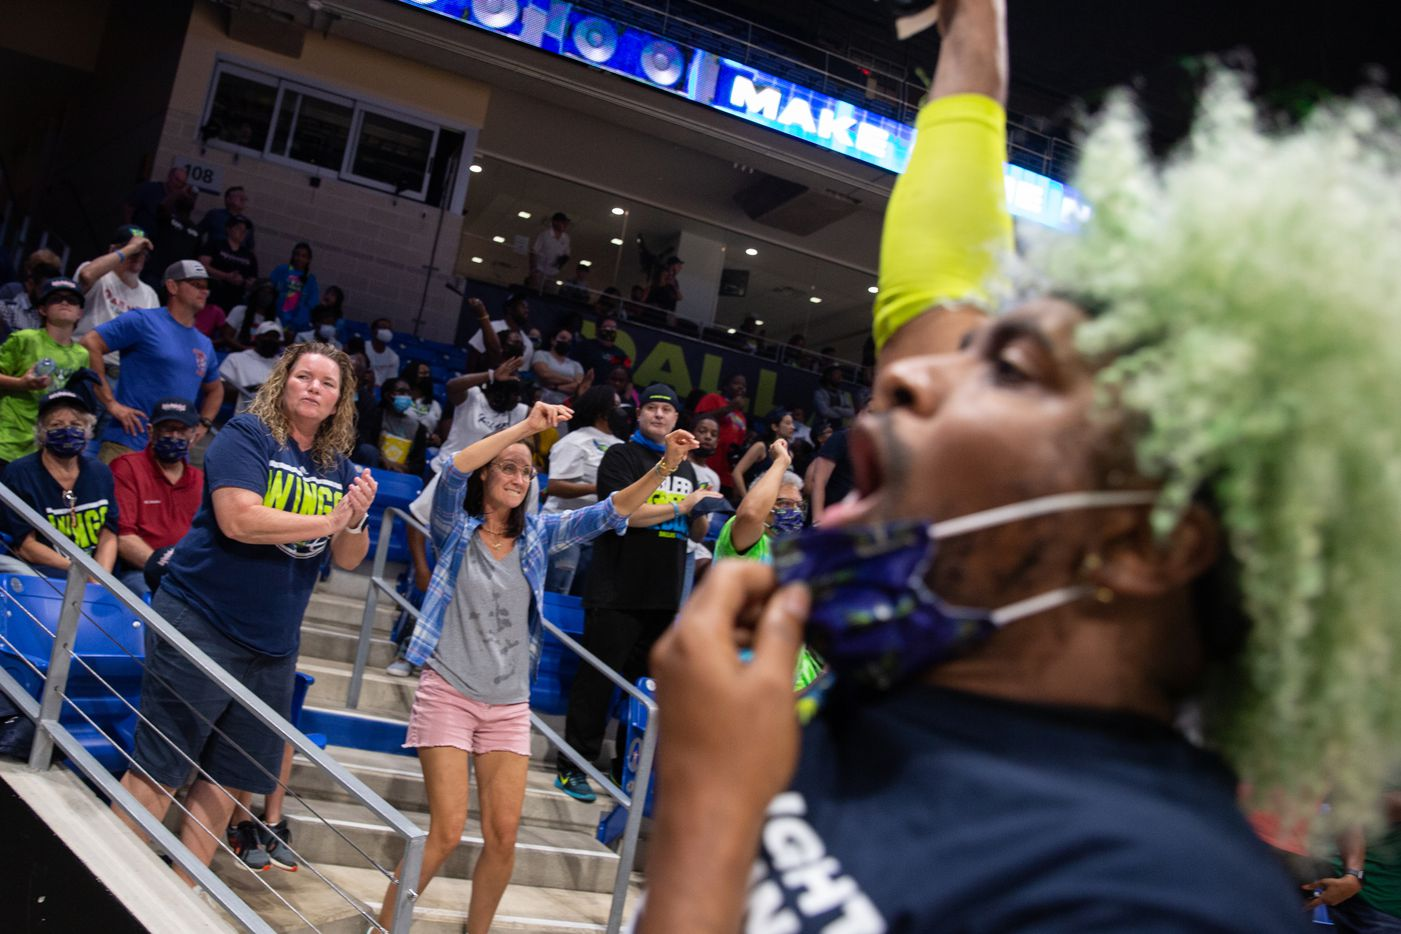 Fans celebrate a basket for Dallas Wings during their game against NY Liberty at College Park Center in Arlington, TX on September 11, 2021.  (Shelby Tauber/Special Contributor)